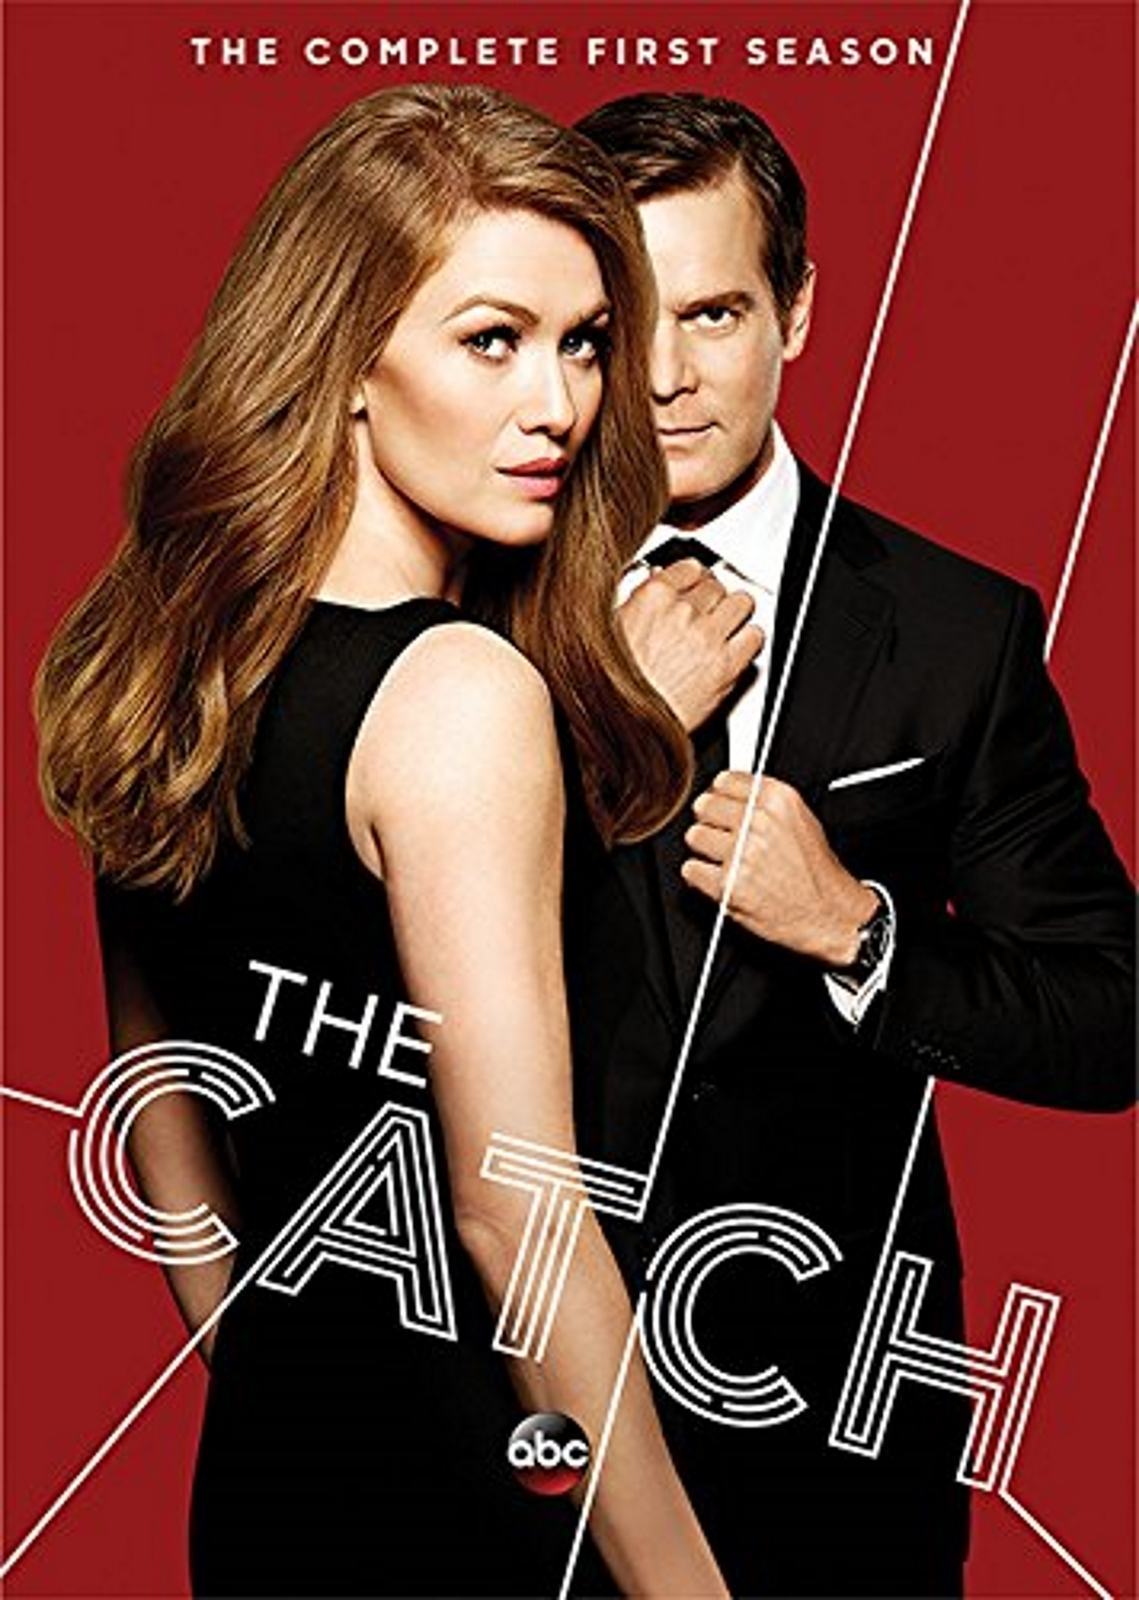 The catch the complete first season one 1  dvd  2016  2 disc